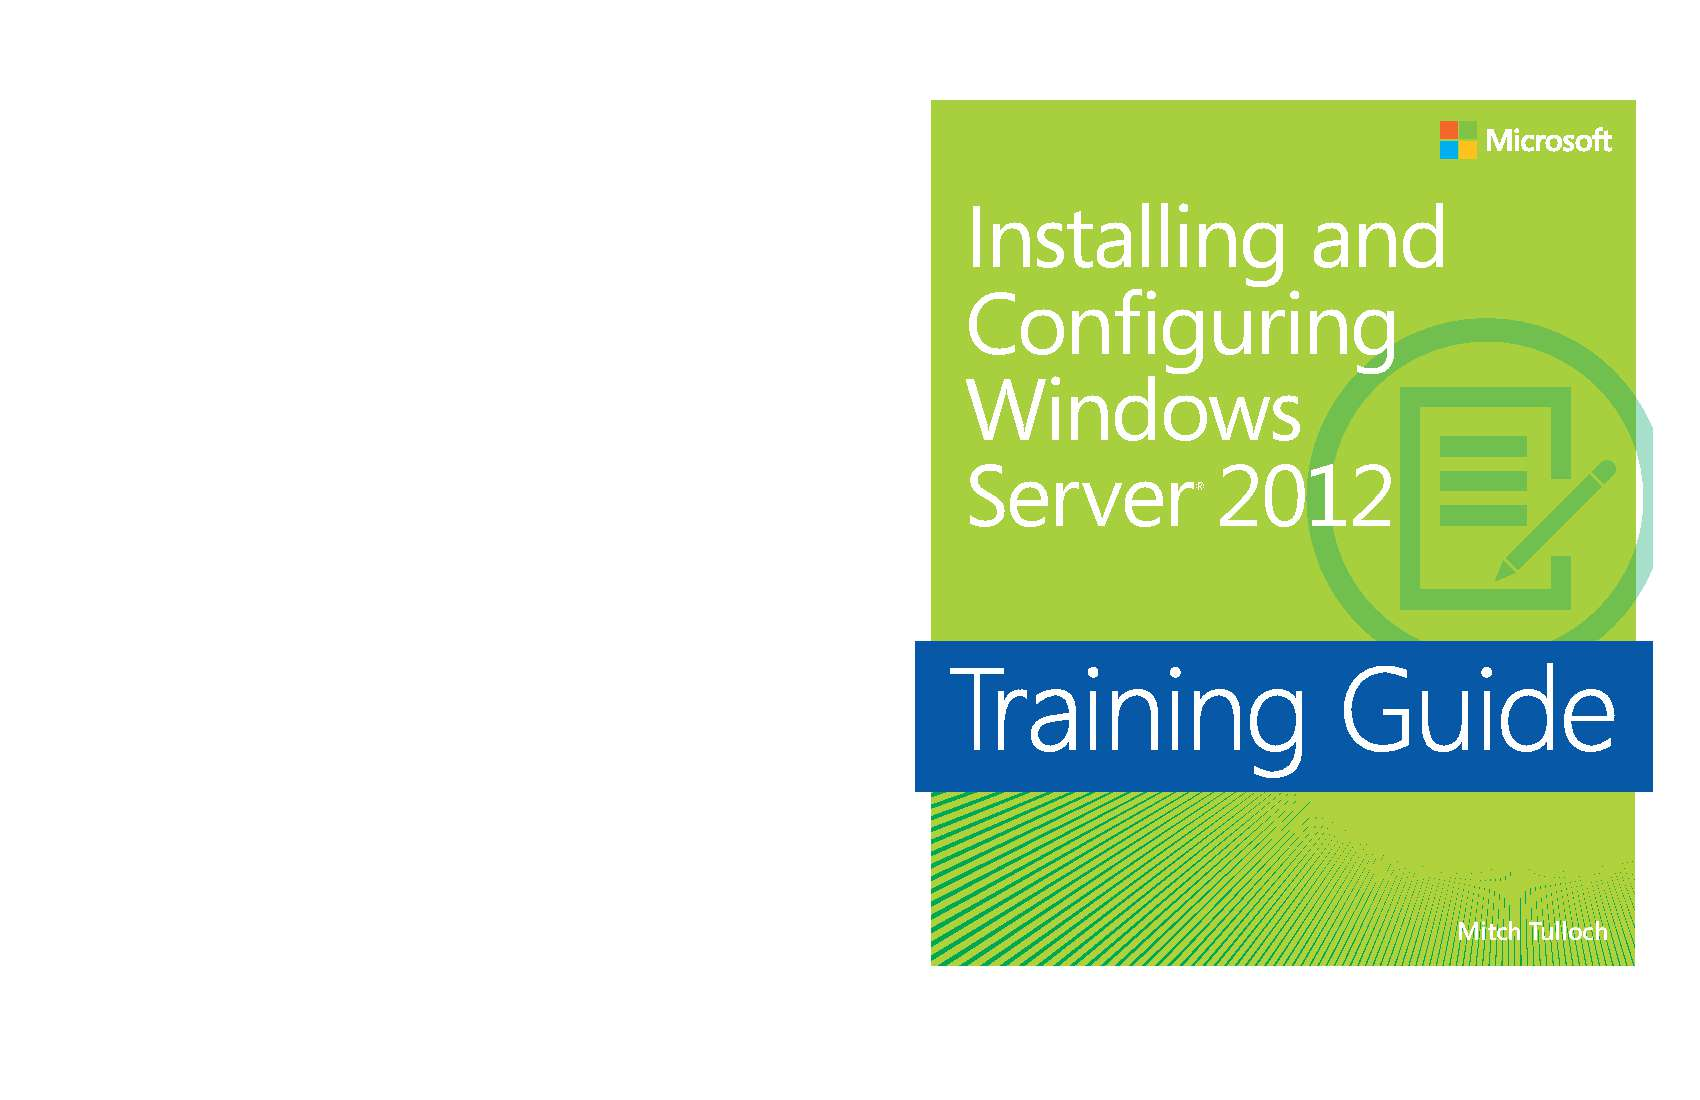 Download images Cặt đặt và cấu hình windows server 2012. Part 1